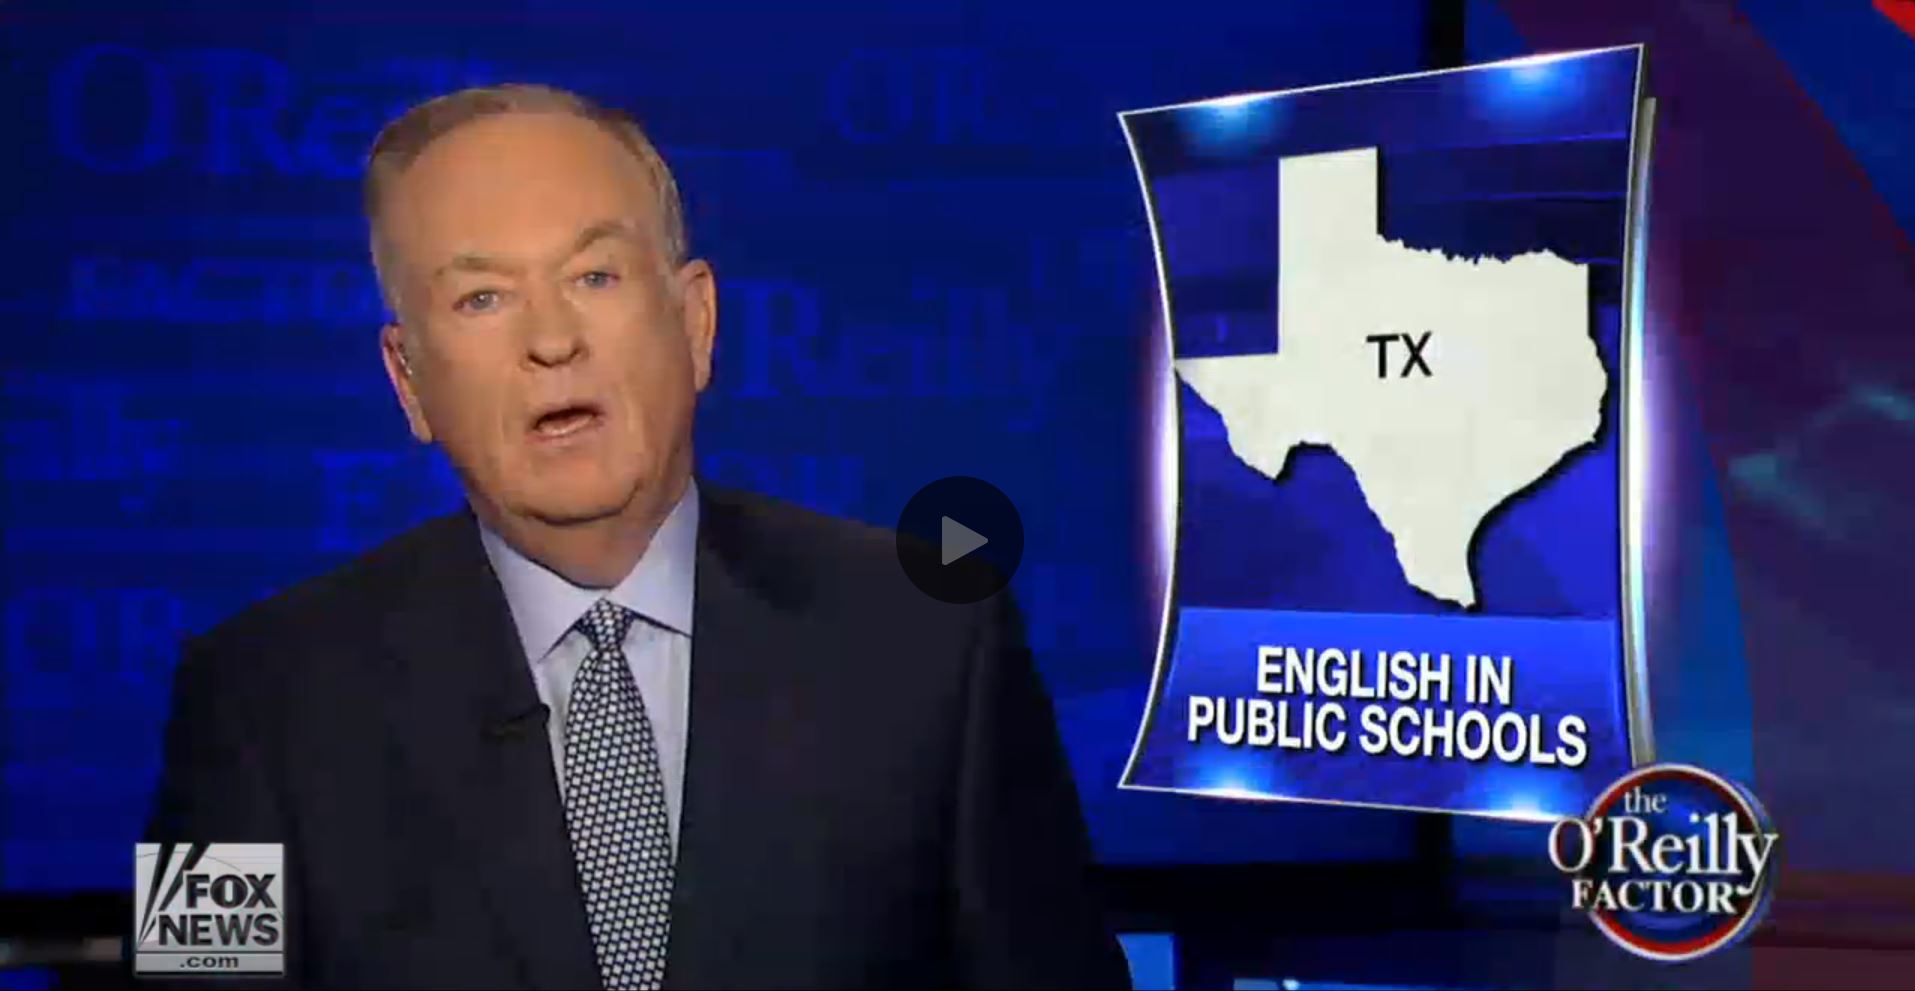 Bill'O English In Public Schools